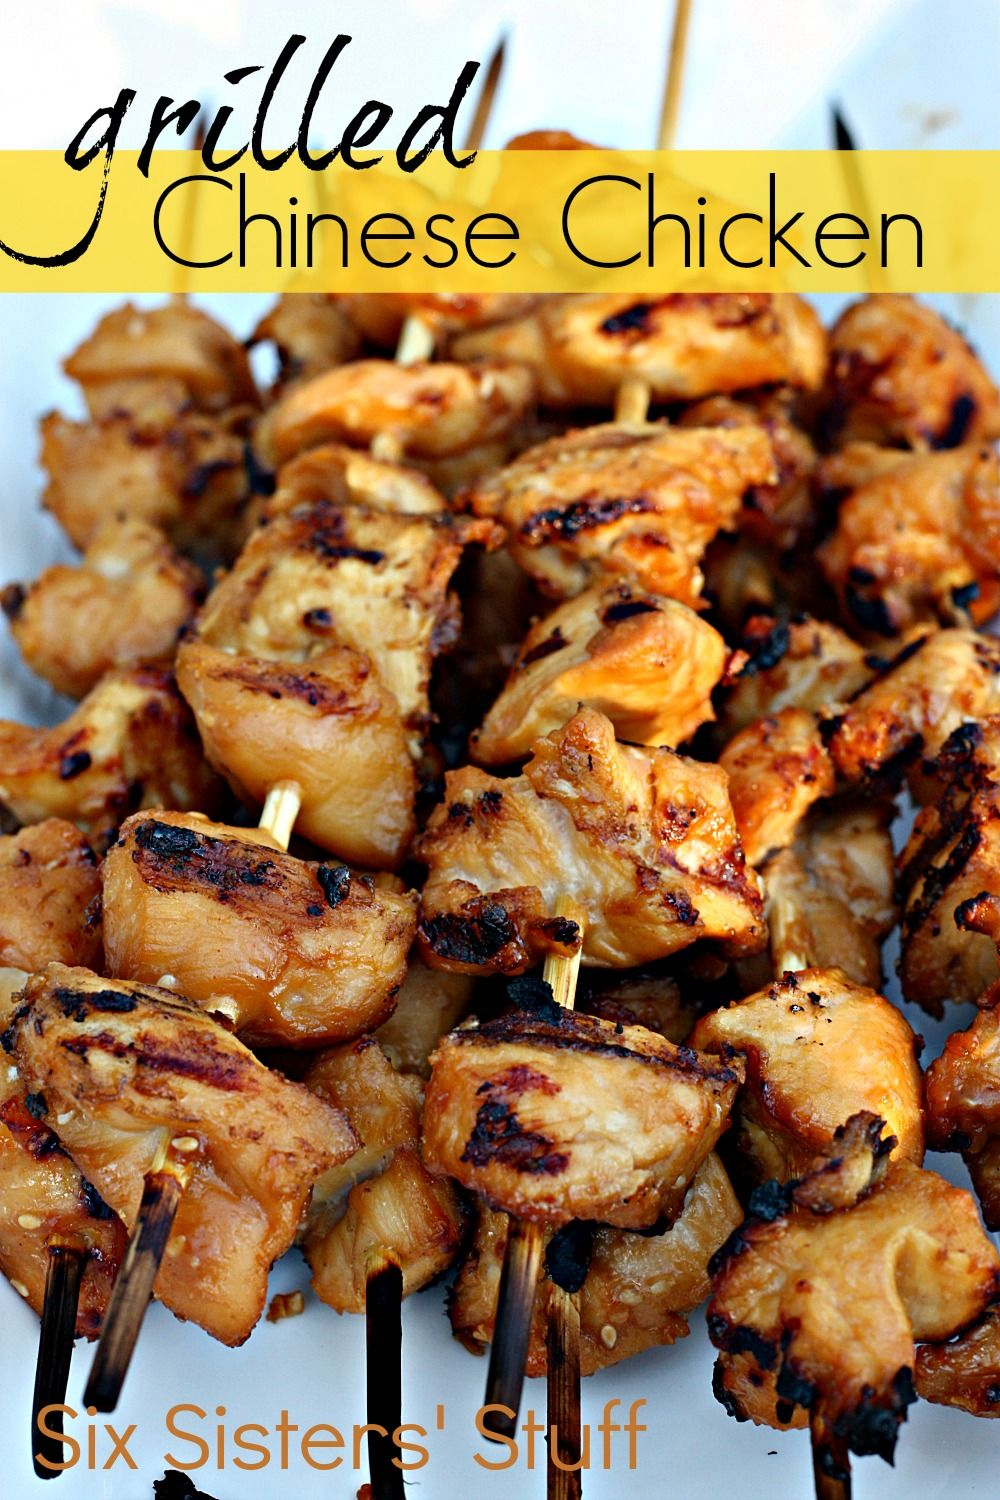 How long do i grill chicken kabobs - Grilled Chinese Chicken